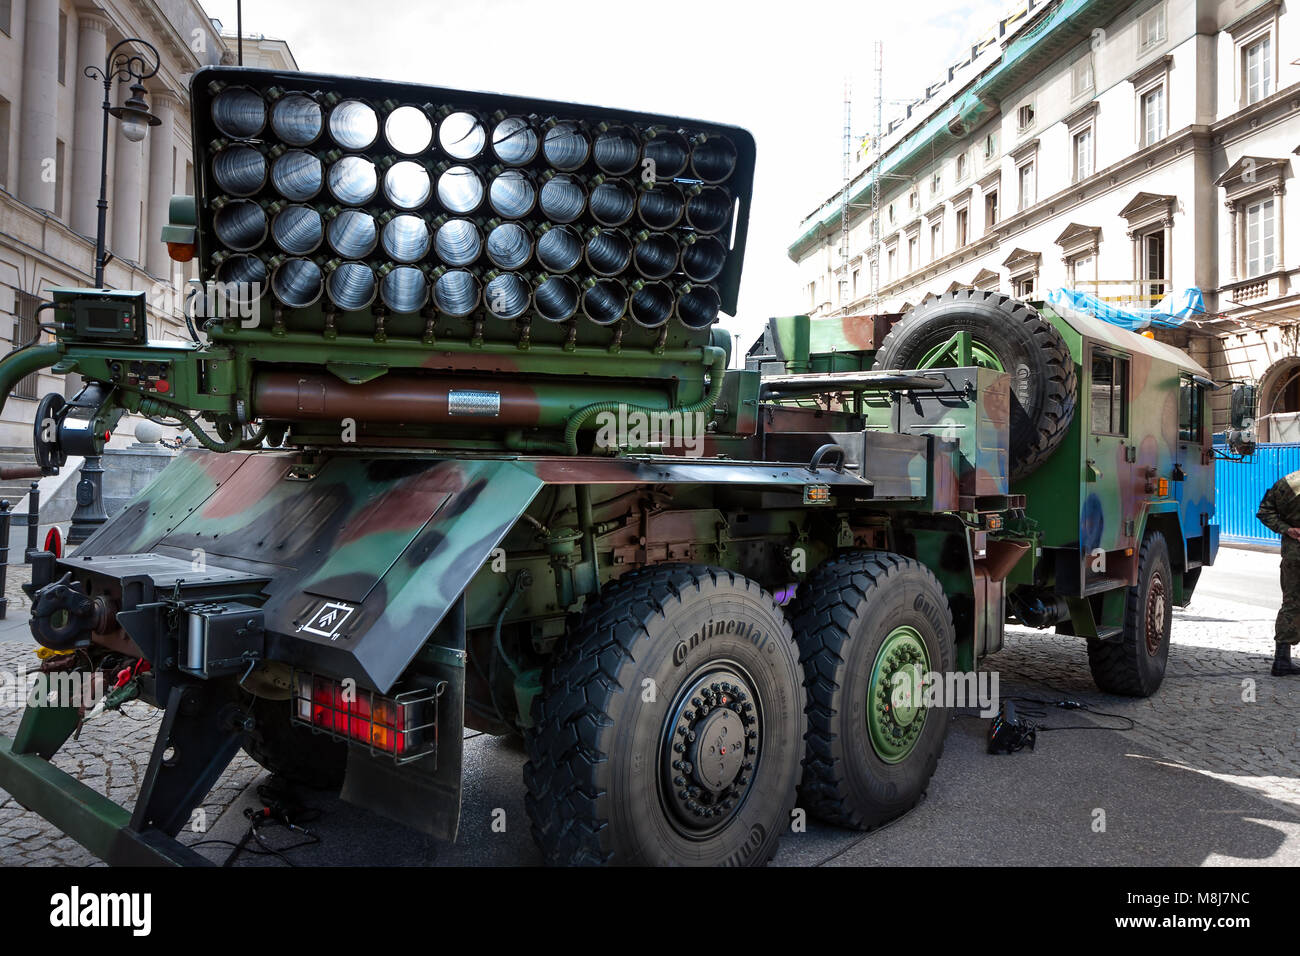 Polish Artillery, Langusta WR40 rocket launcher, 40 round launcher unit. 70th Anniversary of End of World War II. - Stock Image